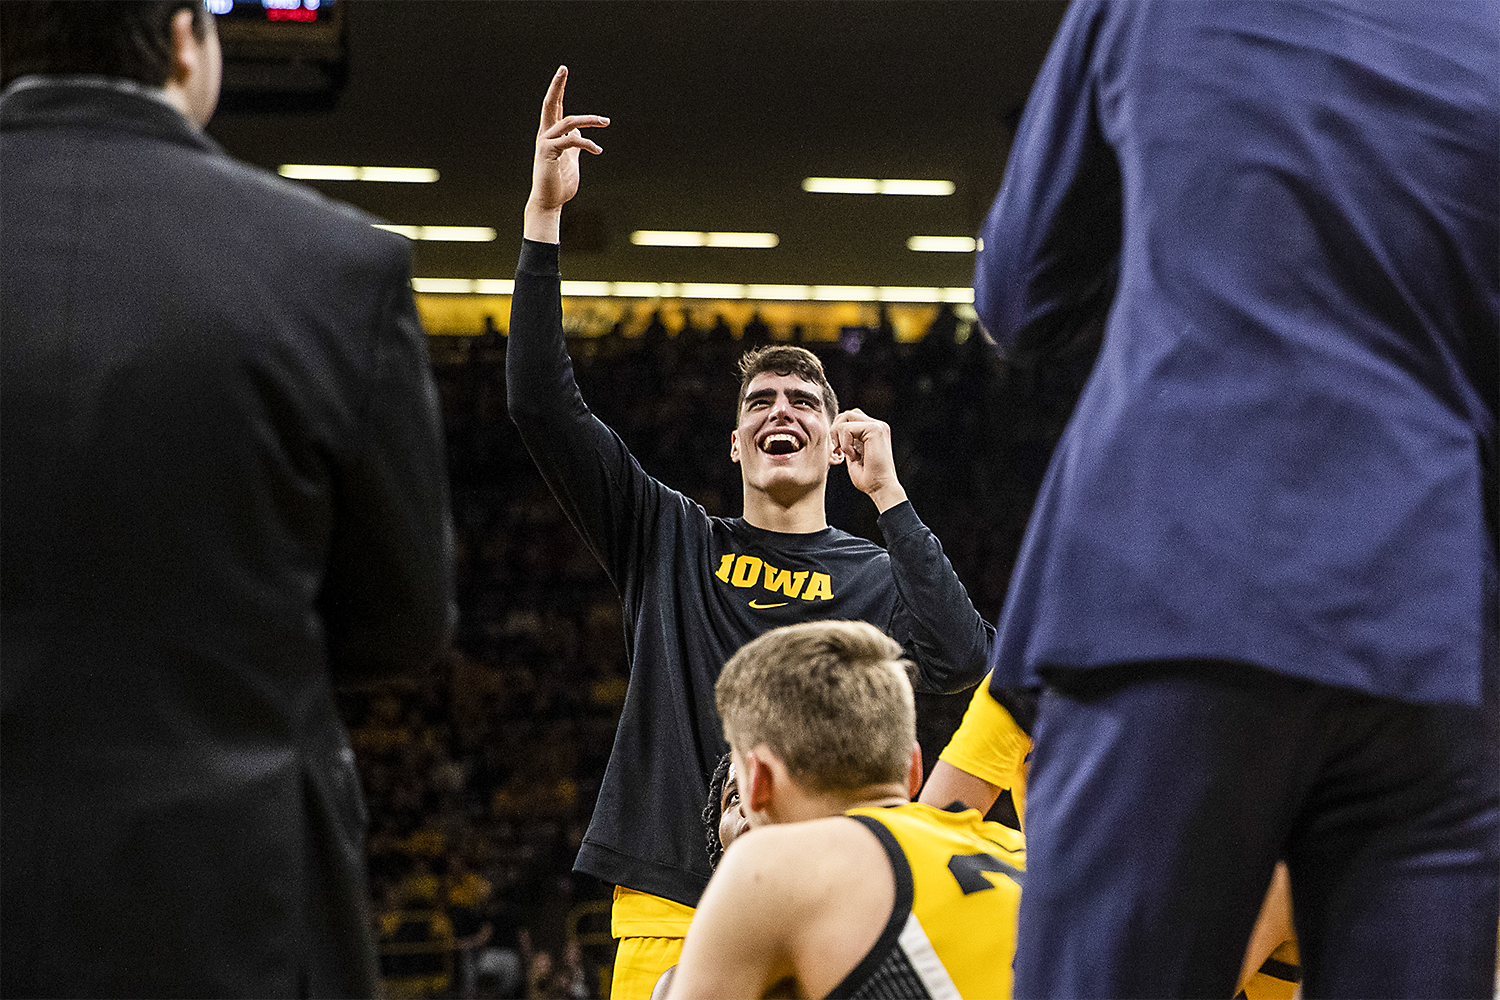 Iowa center Luka Garza reacts to the highlights being shown on the big screen during a timeout during a men's basketball game between the Iowa Hawkeyes and the Nebraska Huskers at Carver-Hawkeye arena on Saturday, February 8, 2020. The Hawkeyes defeated the Huskers 96-72.